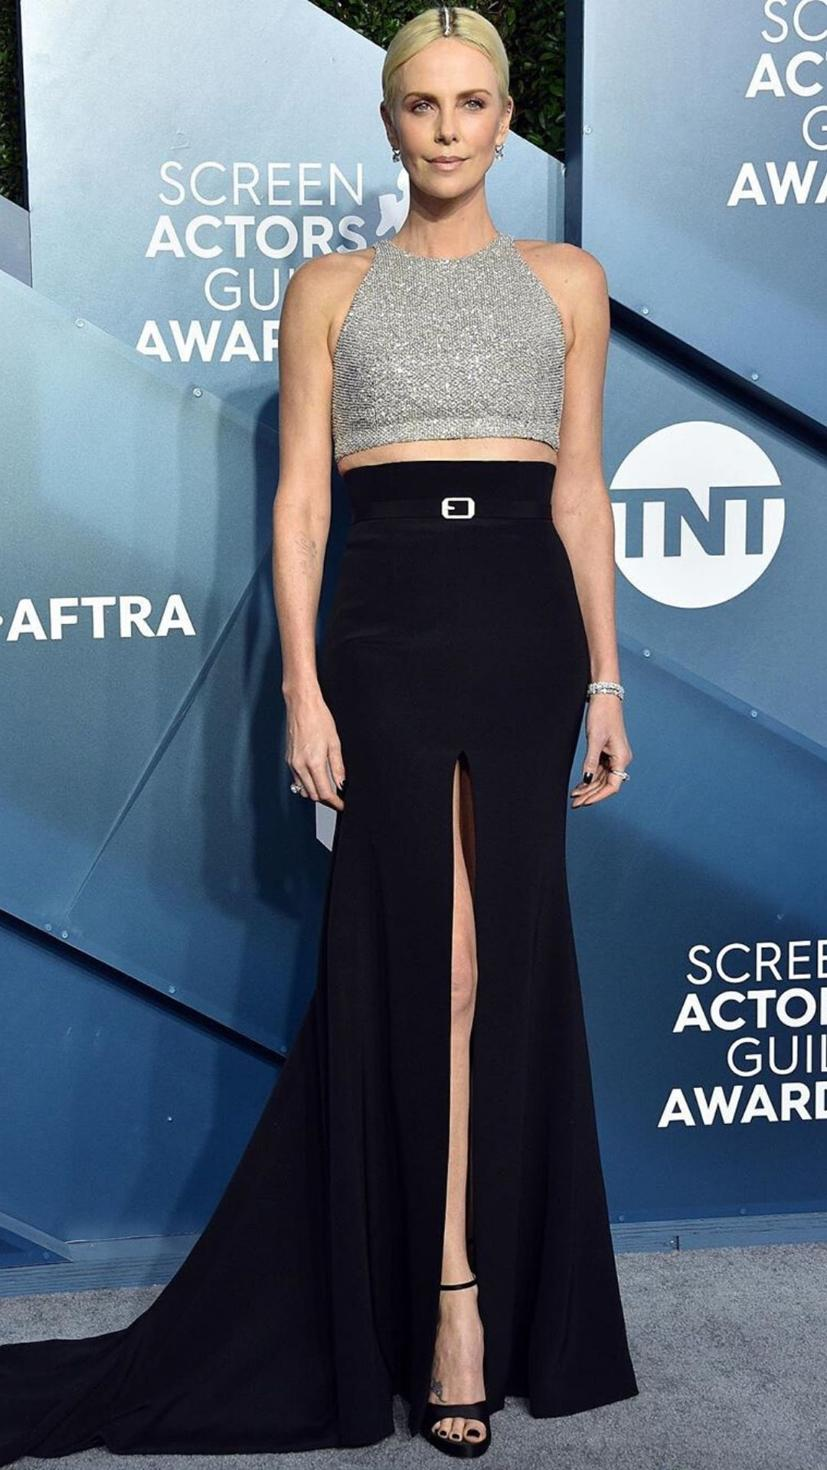 Charlize Theron wore a Givenchy two piece with a leg slit and black heels